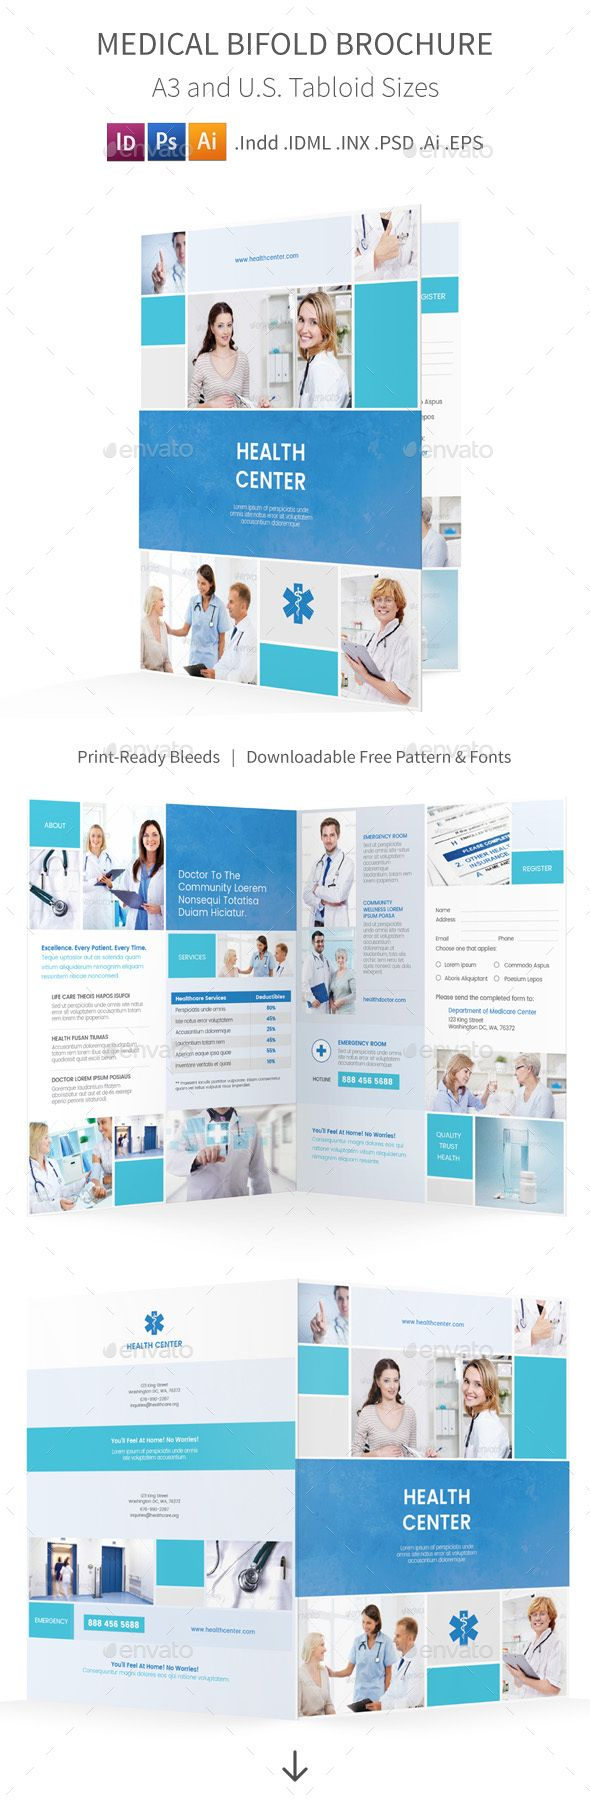 pharmacy brochure template free - 40 best images about top pharmacy brochure designs on